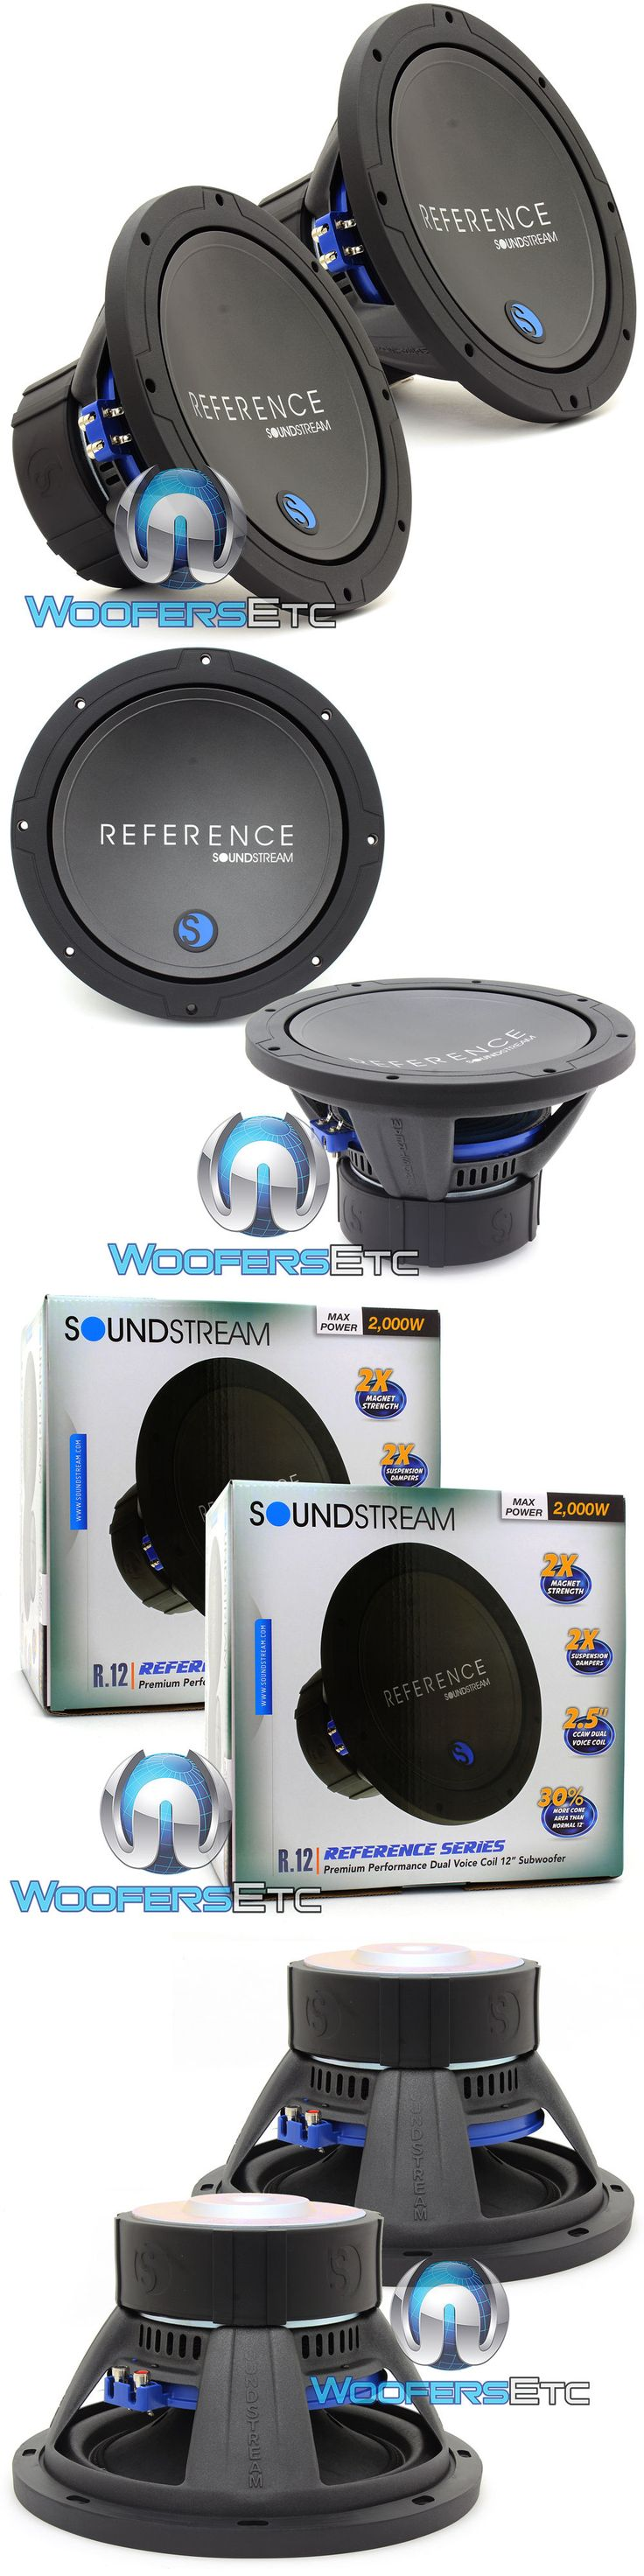 Car Subwoofers: (2) Soundstream R.122 Pro Subs 12 4000W Max Dual 2-Ohm Subwoofers Speakers New -> BUY IT NOW ONLY: $299.99 on eBay!